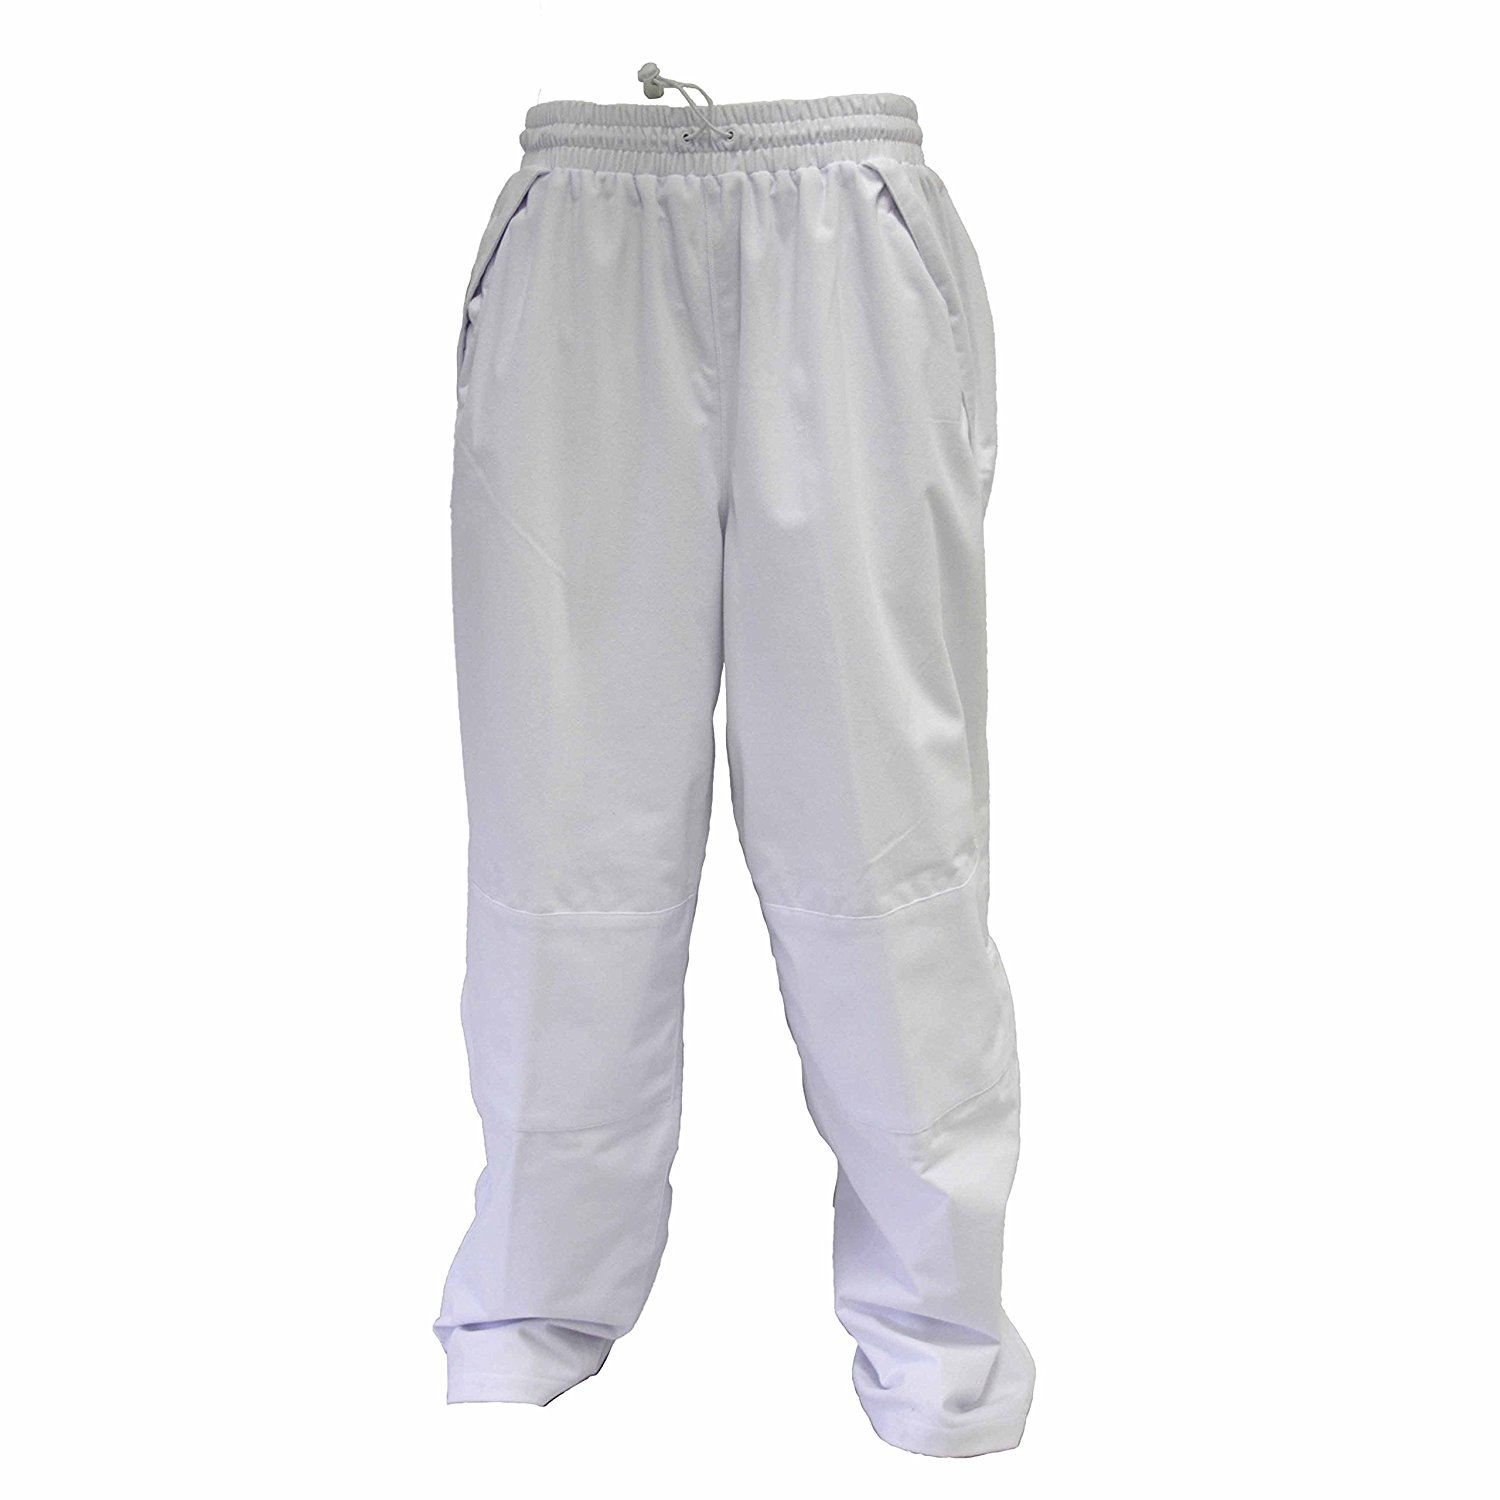 NEW Wildfowler Men's Outfitter Waterproof Hunting Pants, White - 3X-Large